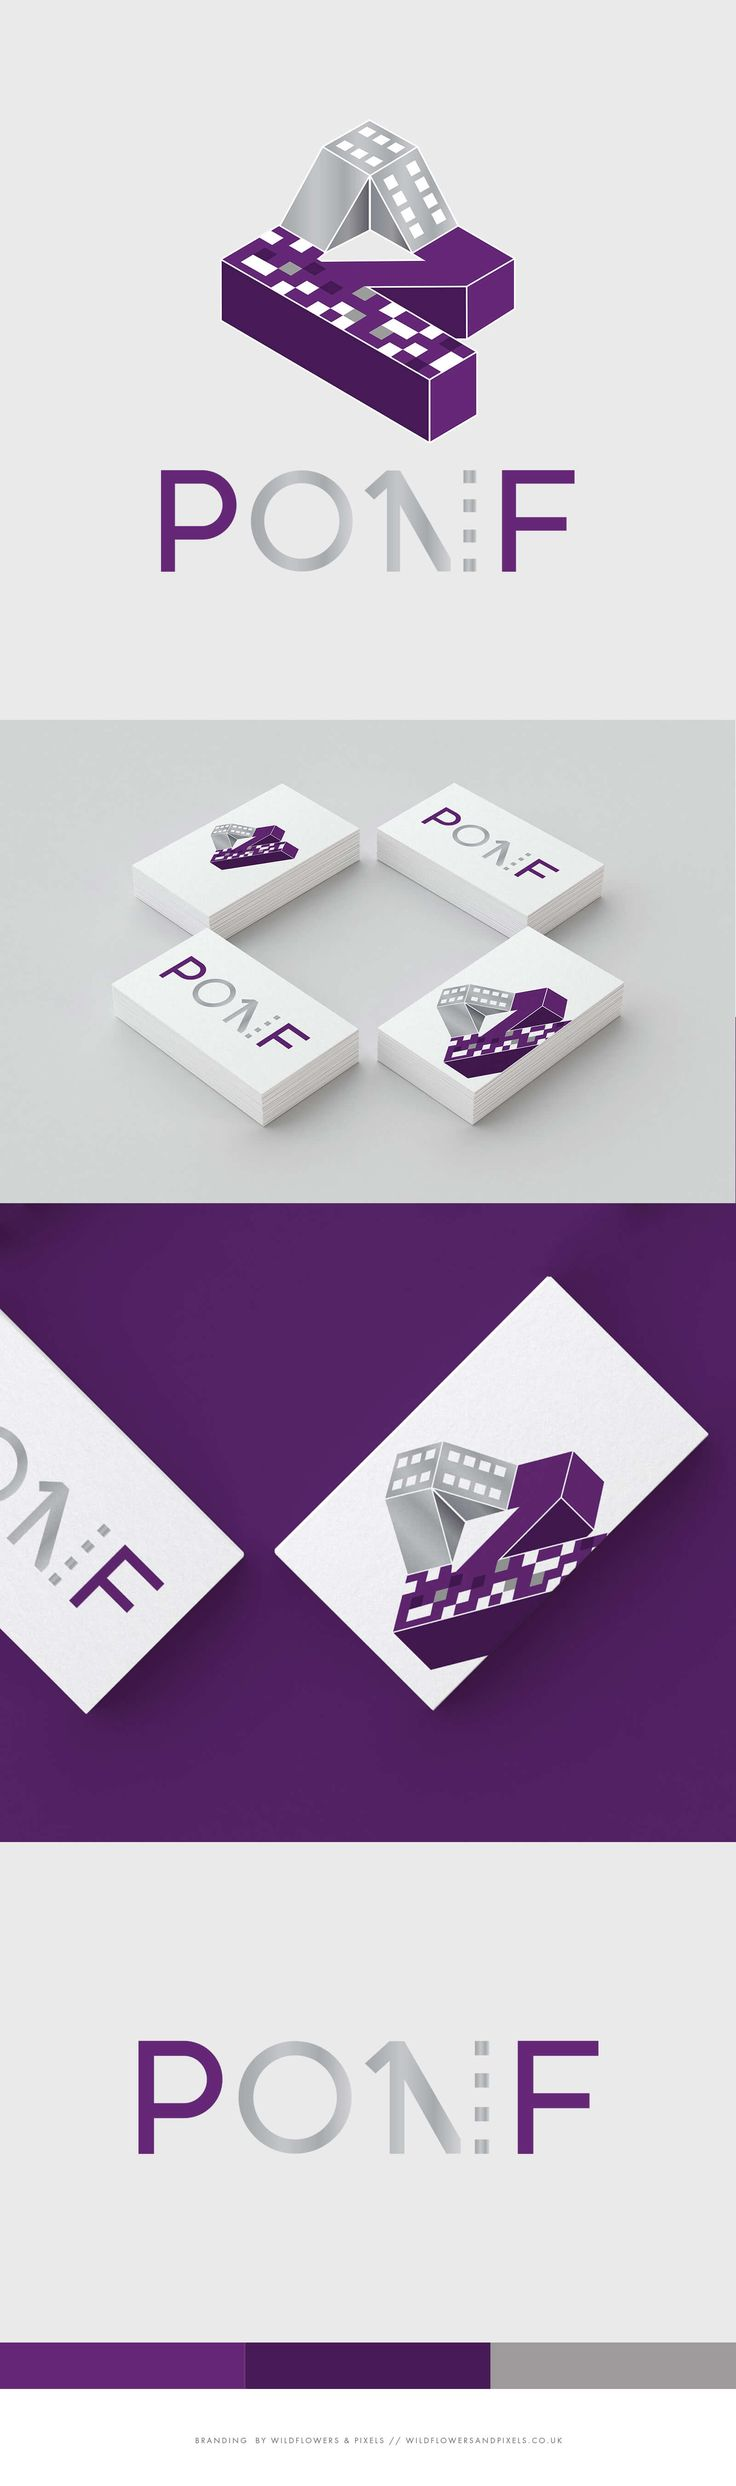 PONF or Photography on Film is a Multiback camera. Escher style logo design.